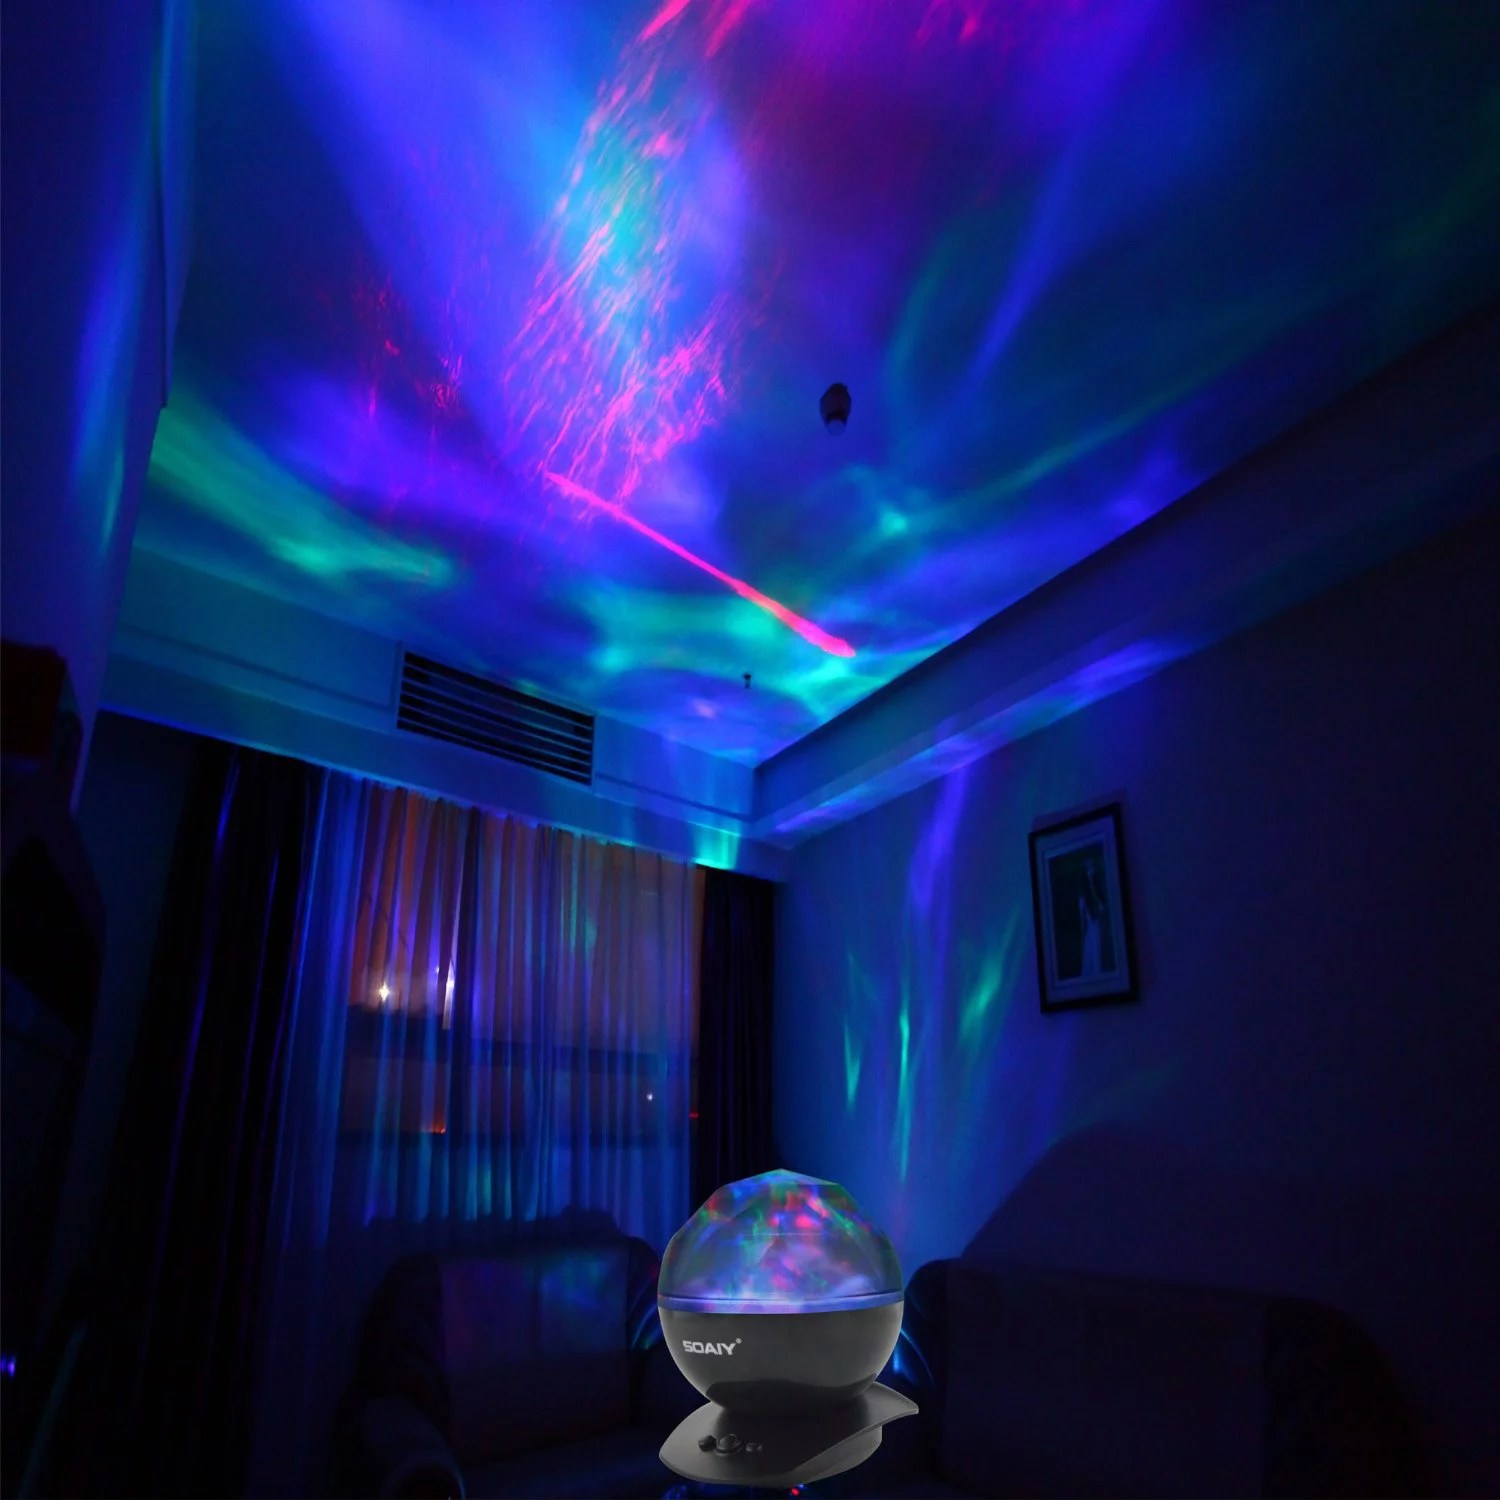 Night Light With Stars On Ceiling Soaiy Night Light Projector Aurora Ocean Weave Projector For Baby Kids Children Adults Christmas Rotating Star Projector Led Night Light Lamp With